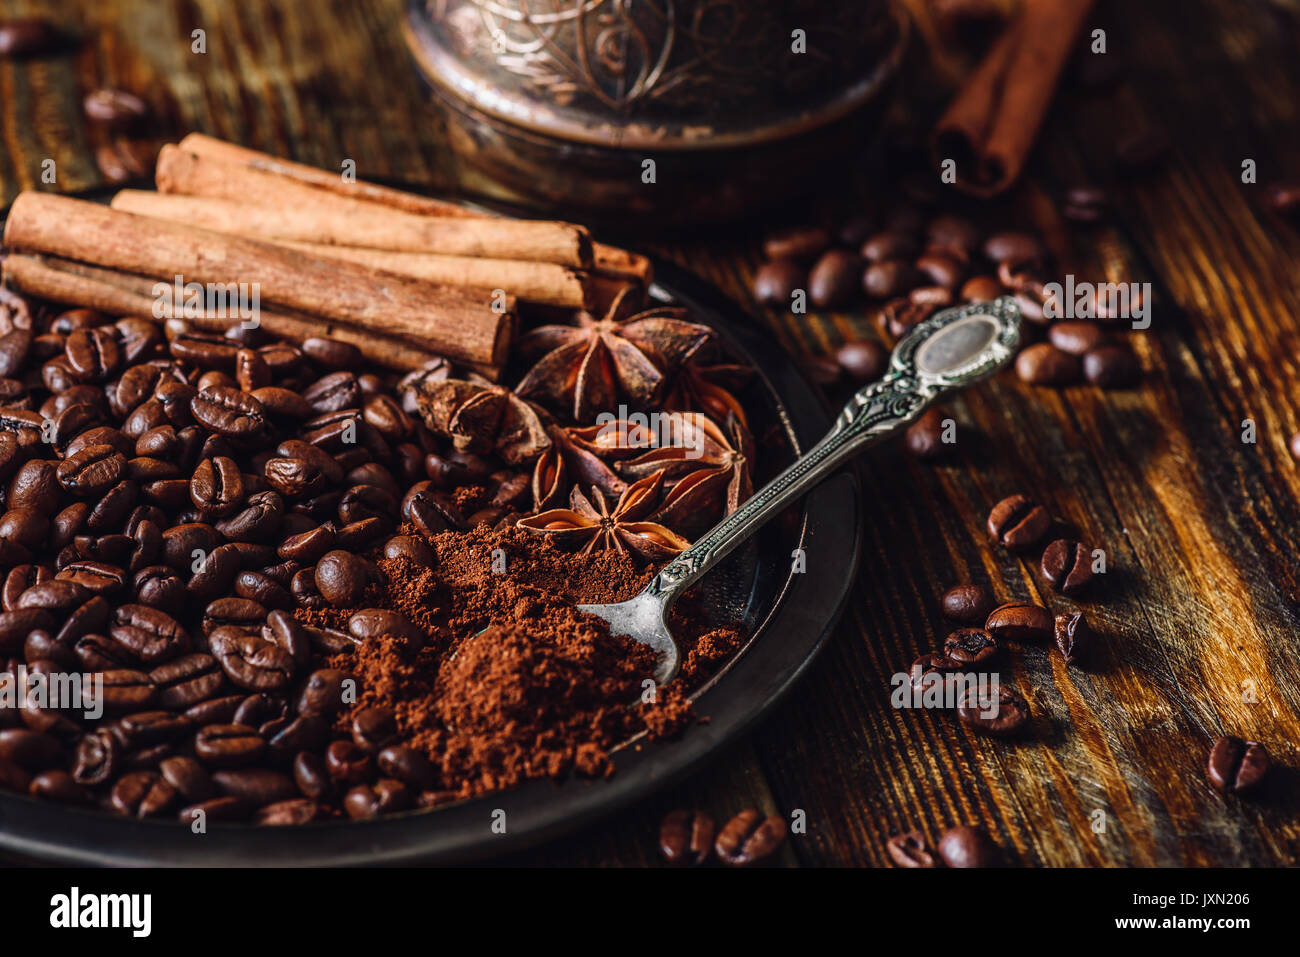 Coffee Beans with Spooonful of Ground Coffee, Cinnamon Sticks and Chinese Star Anise on Metal Plate. Some Beans Scattered on Wooden Table and Cezve on - Stock Image